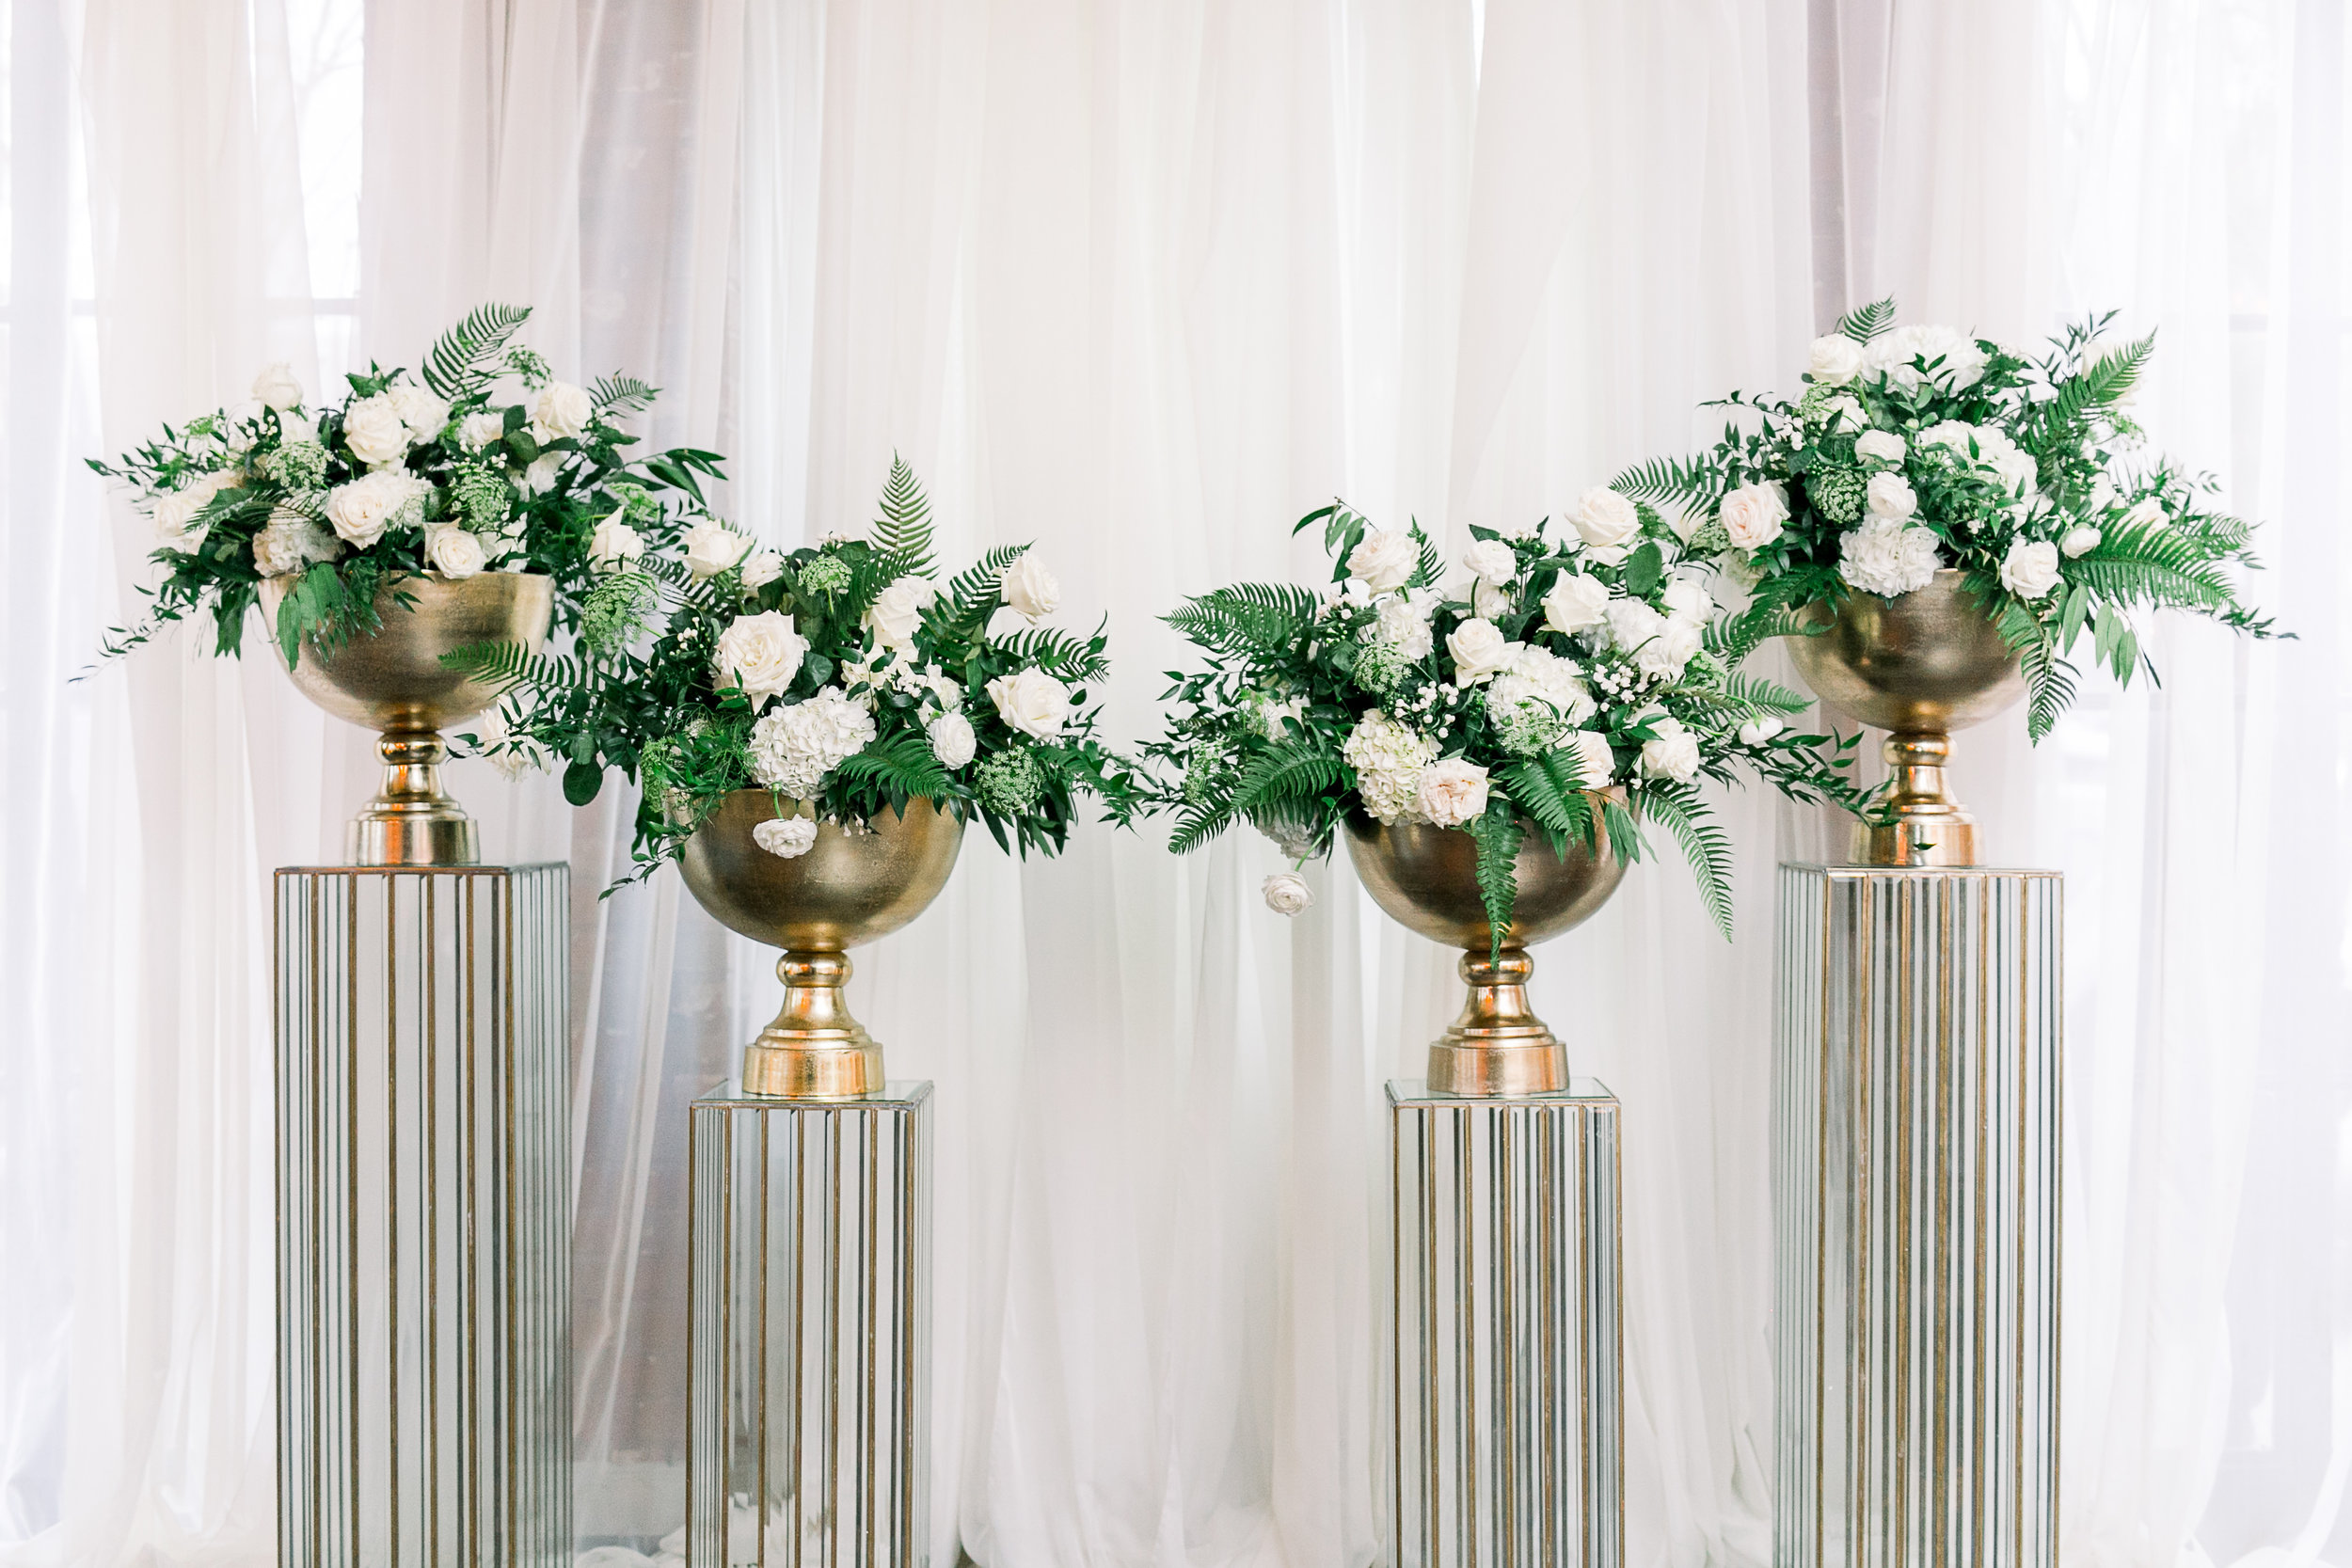 Station 3 Altar backdrop with four glass columns and white and green floral